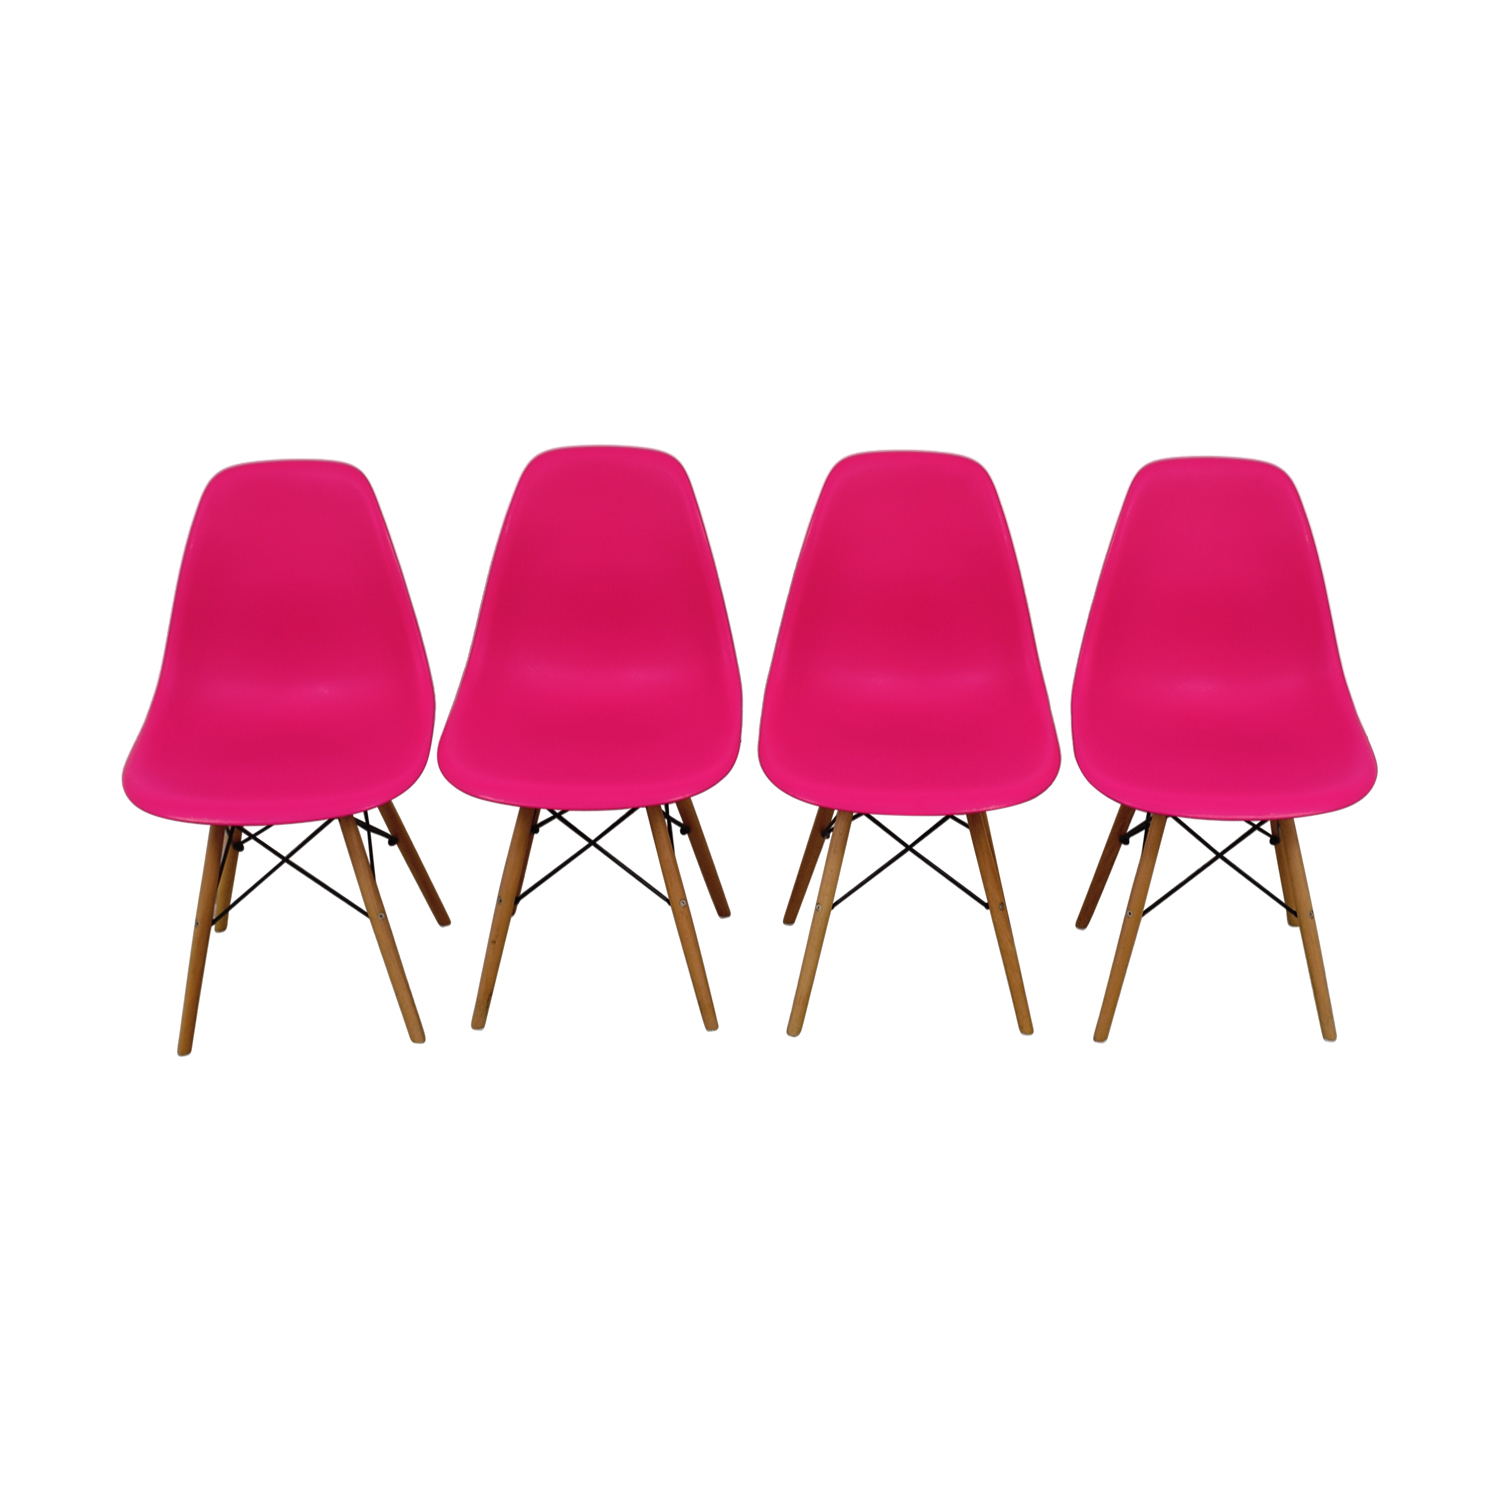 OFF Mid Century Hot Pink Dining Chairs Chairs